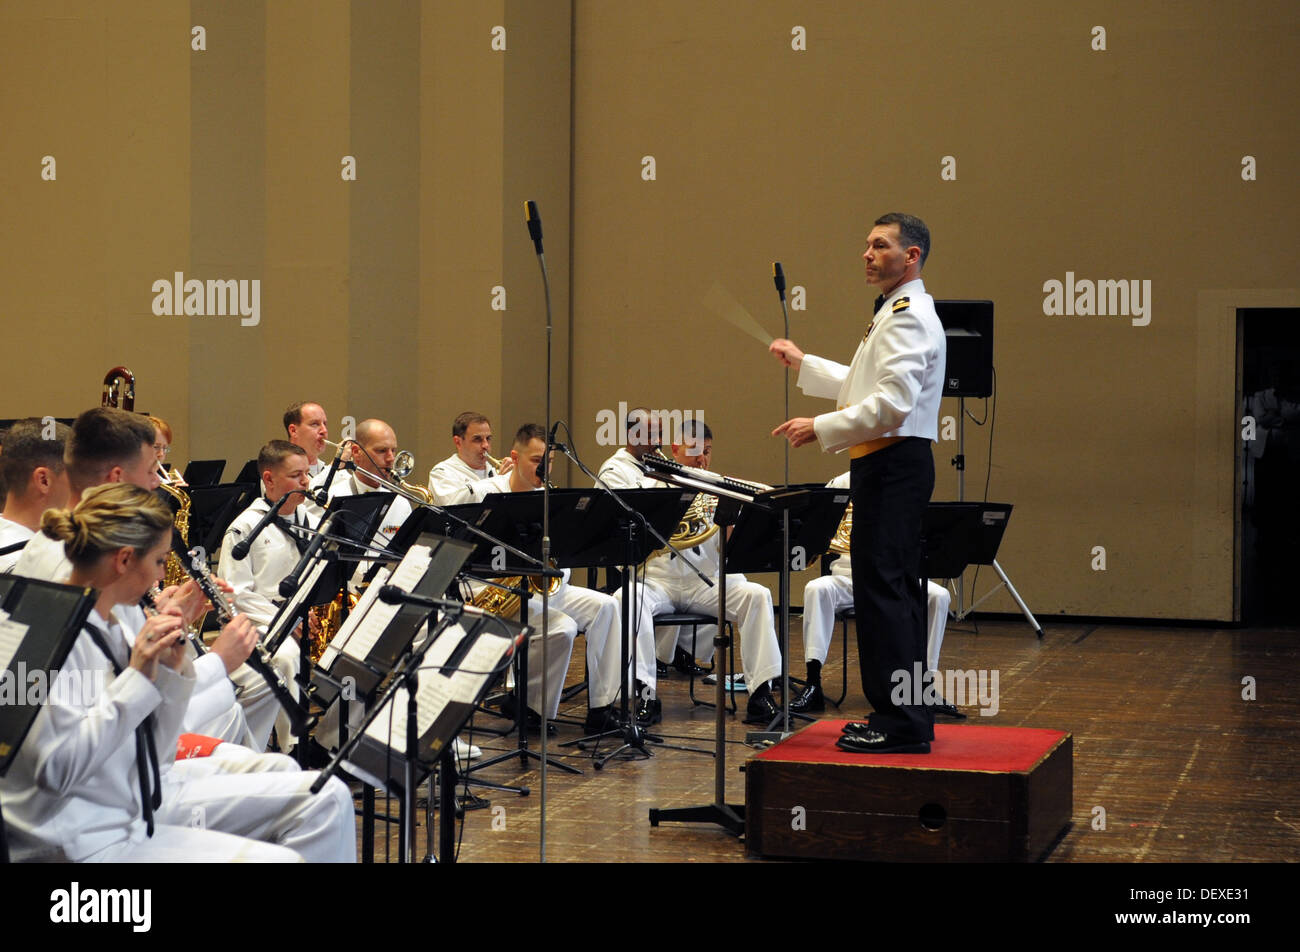 The U.S. 7th Fleet Band, conducted by Lt. Geordie Kelly, 7th Fleet bandmaster, performs at the Yokosuka Arts Theatre. Stock Photo